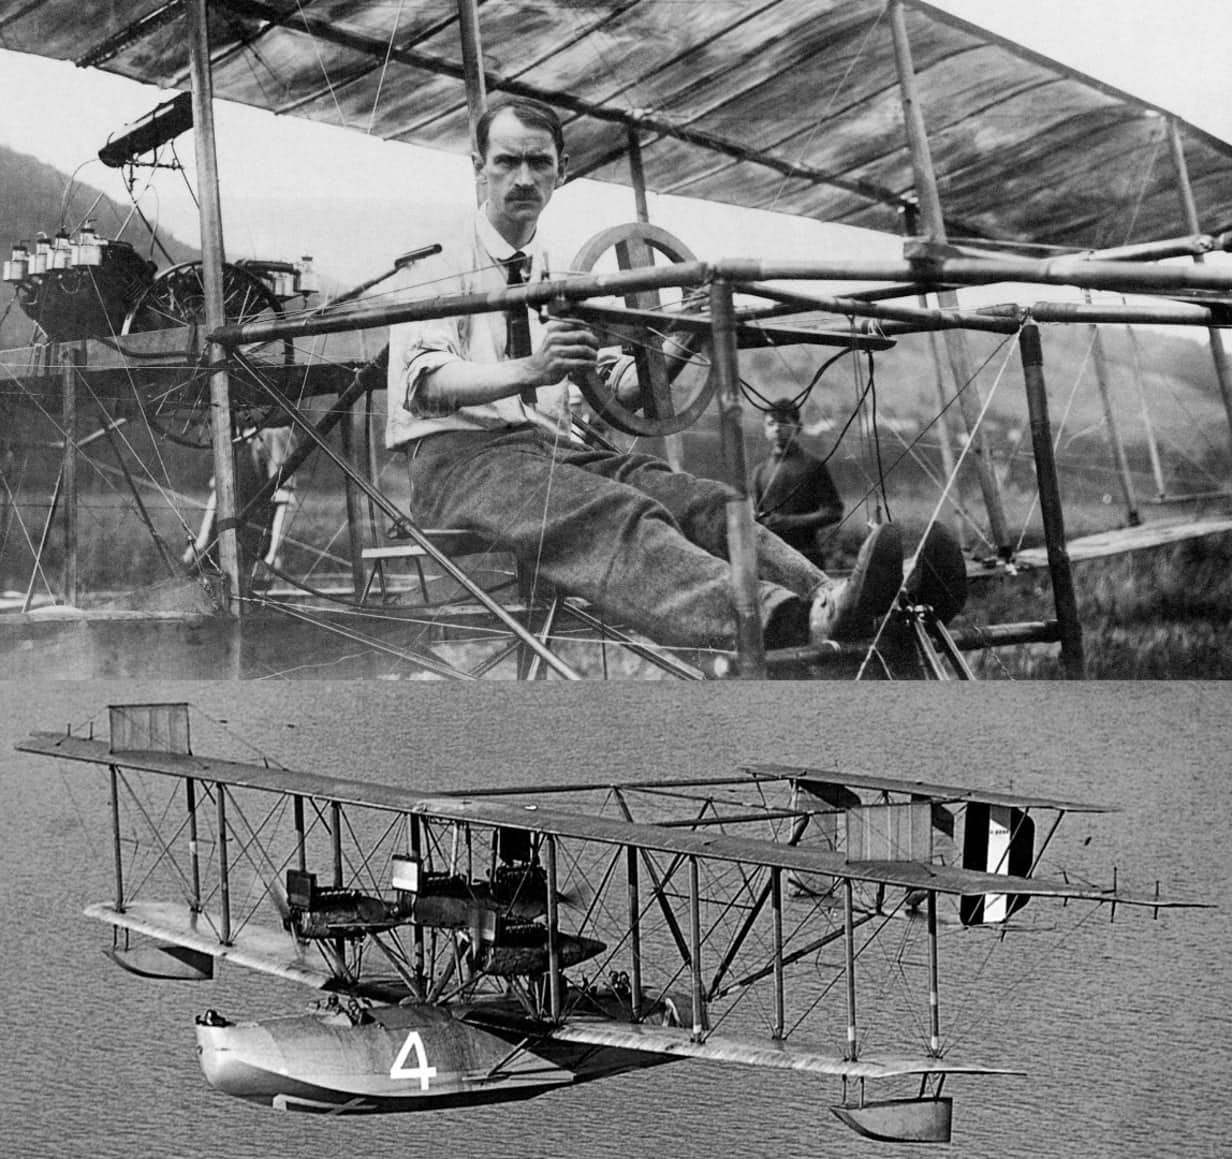 Glenn Curtiss' subsequent role in the history of aviation overshadows some of his most remarkable achievements along...